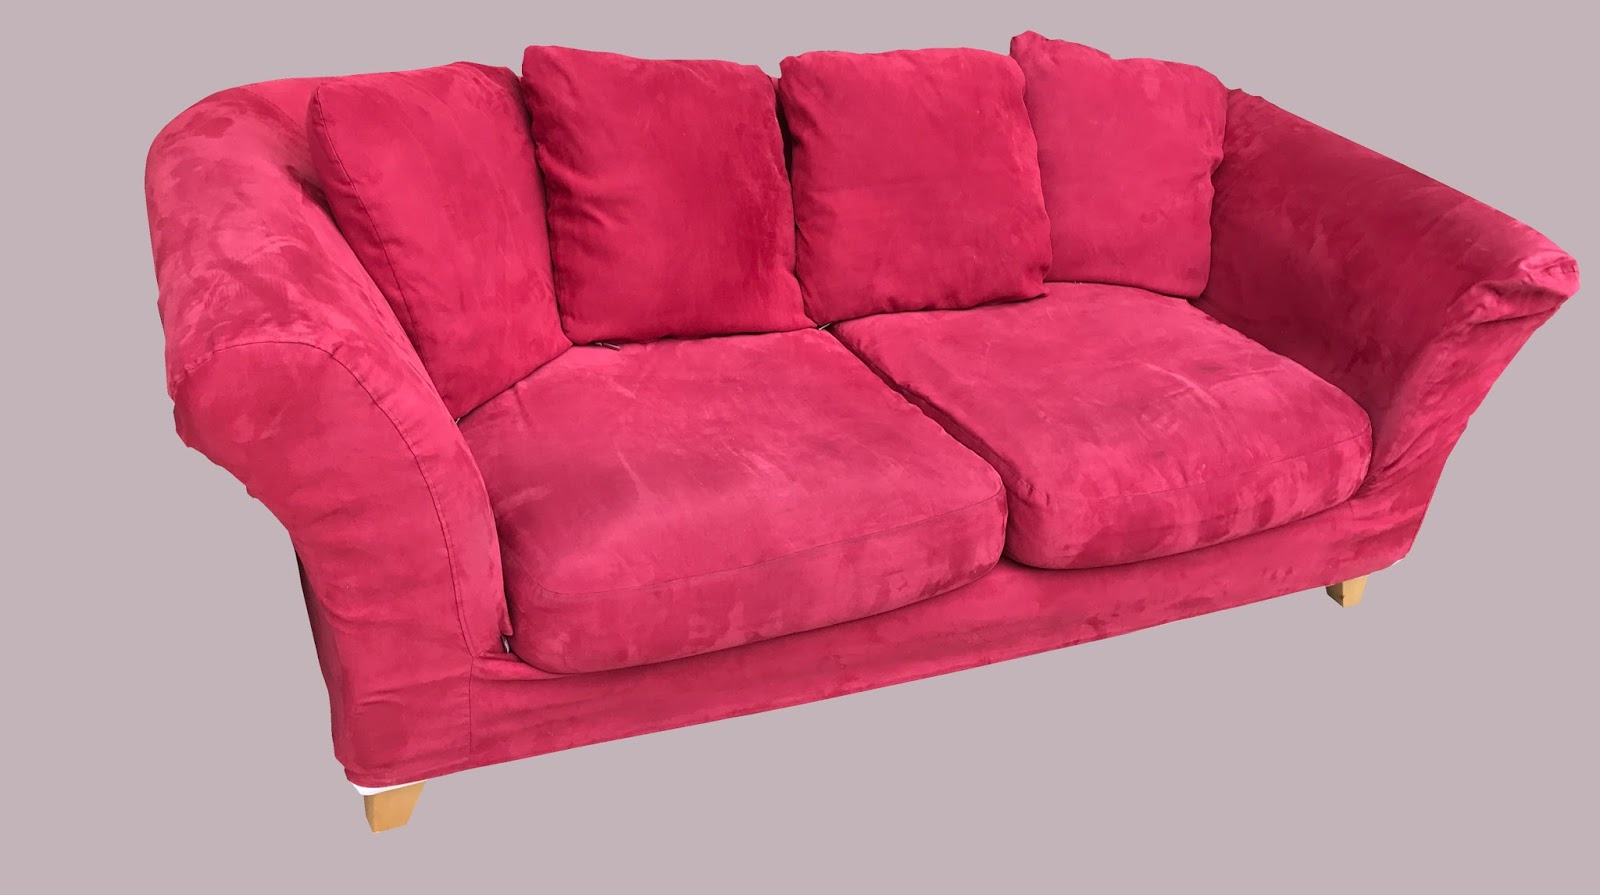 Uhuru Furniture Collectibles Red Microfiber Sofa 155